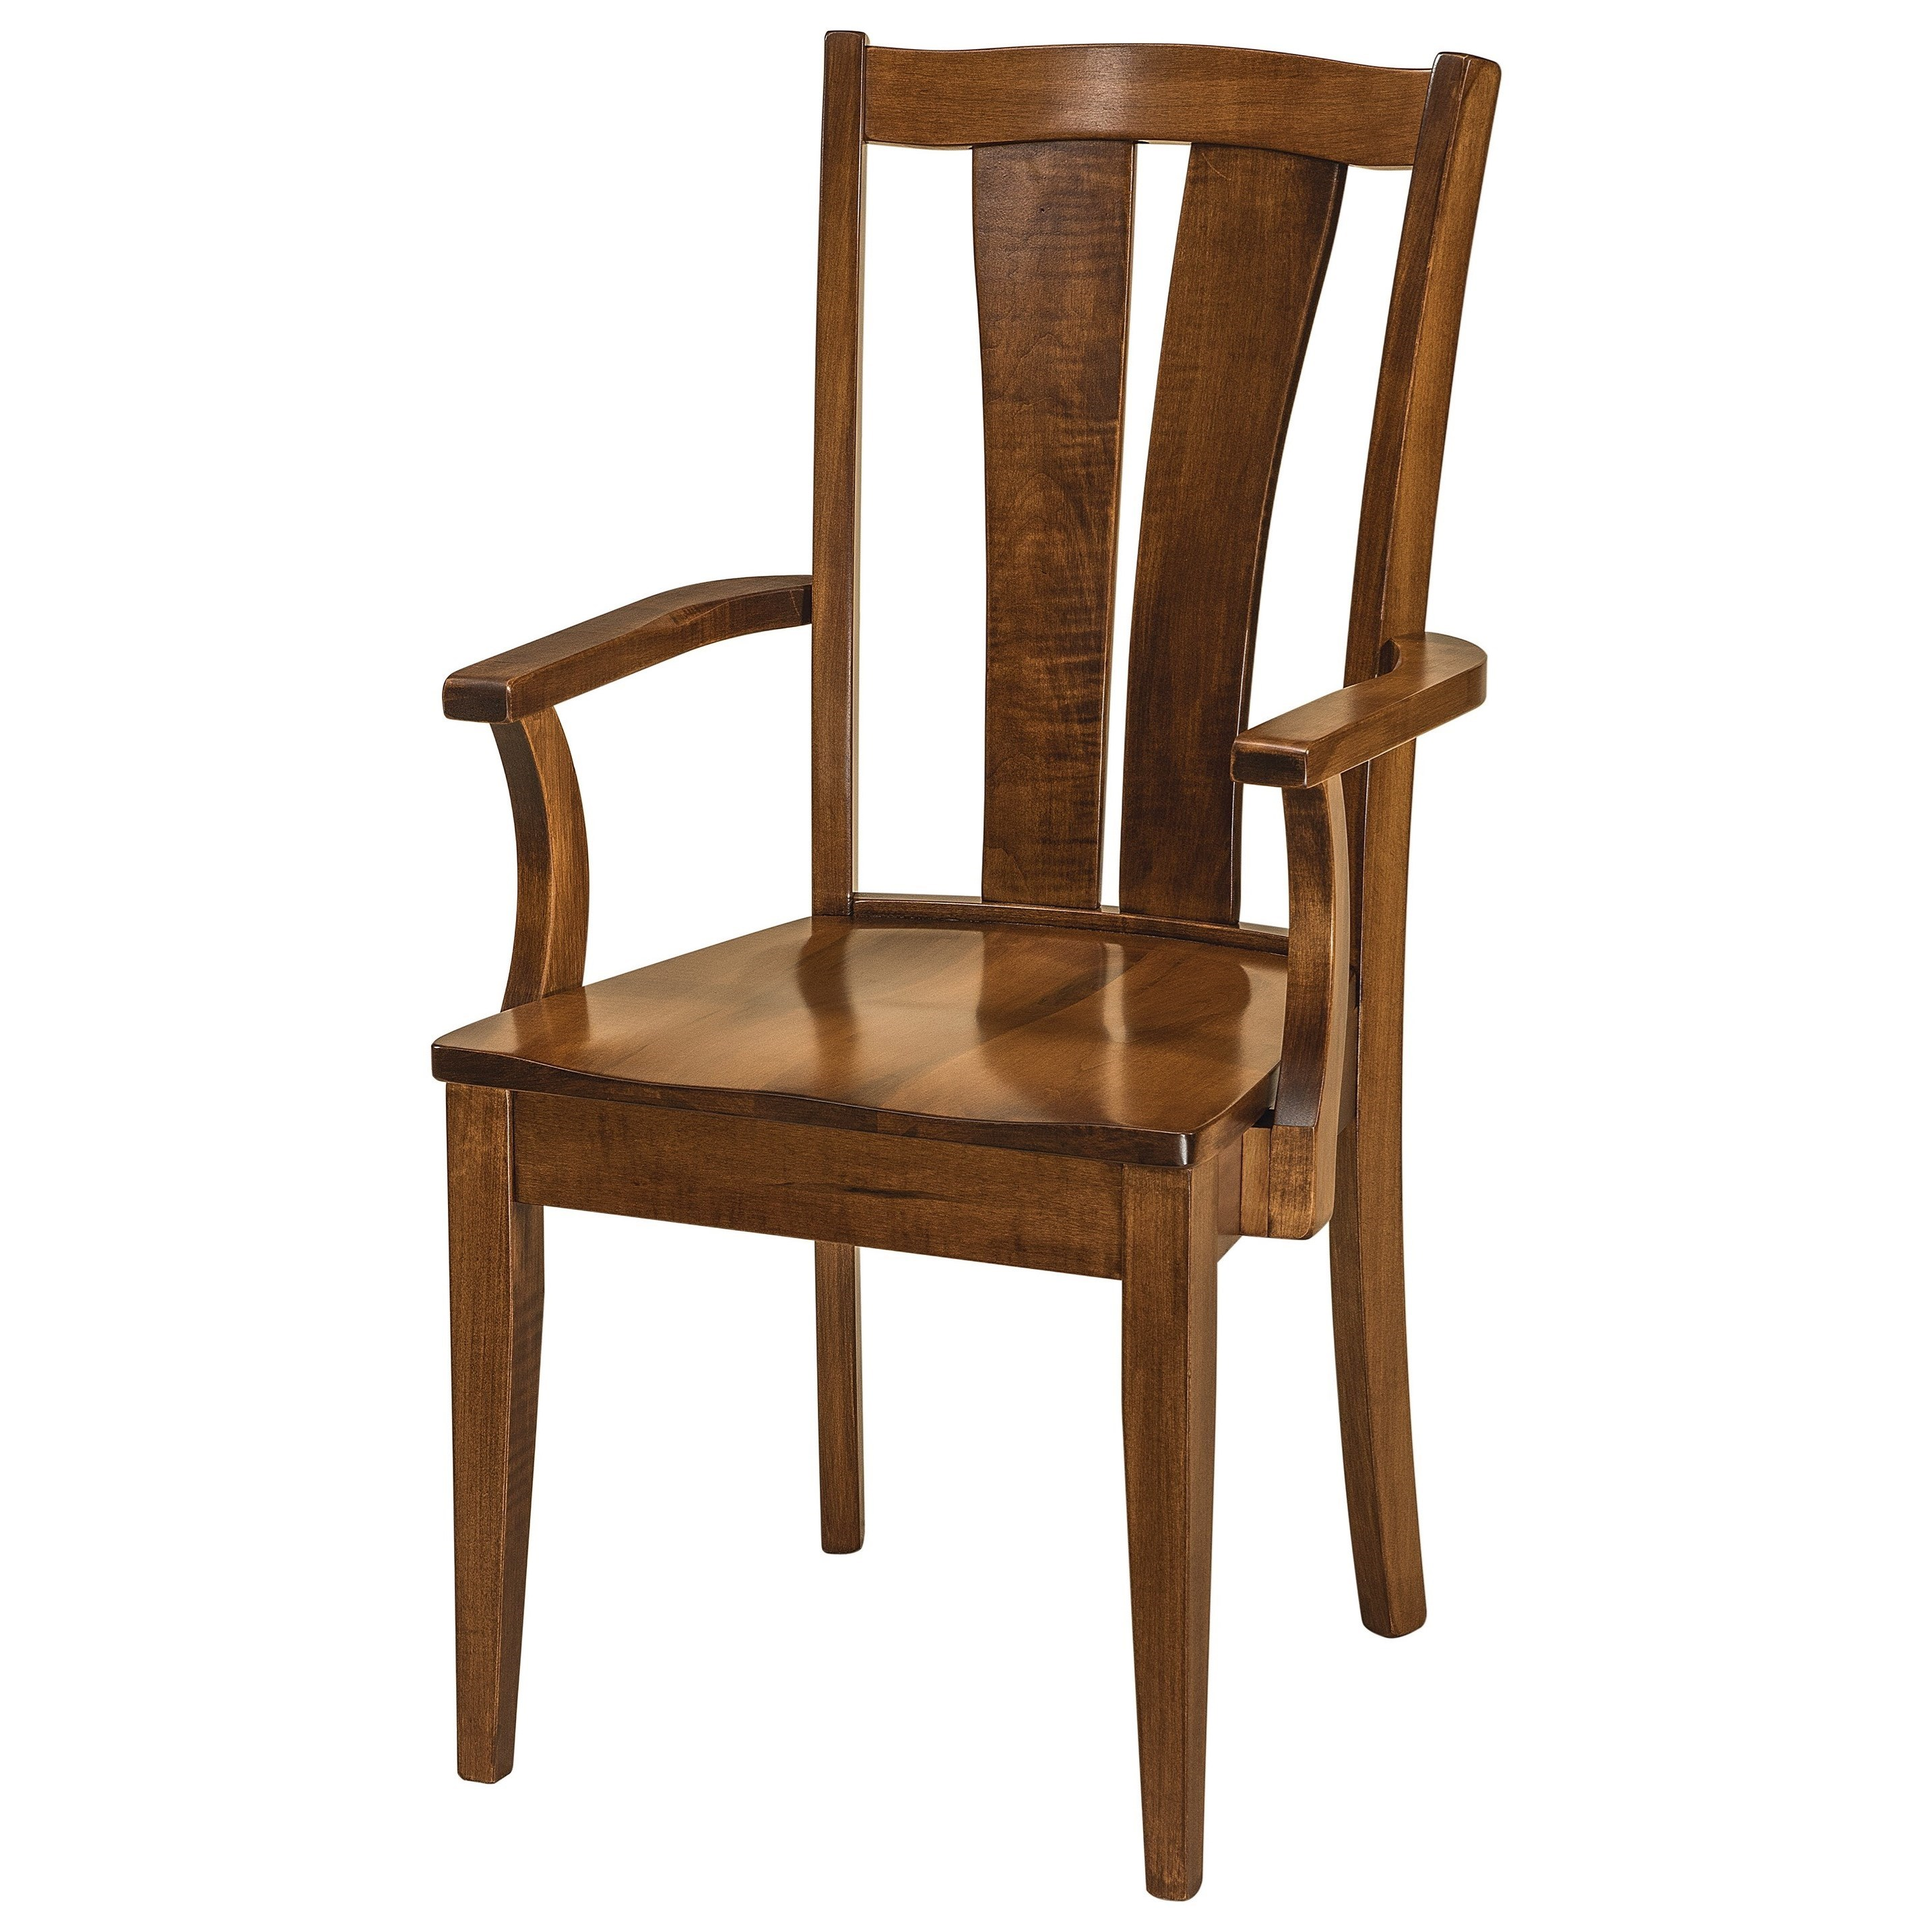 Brawley Arm Chair - Wood Seat by F&N Woodworking at Mueller Furniture